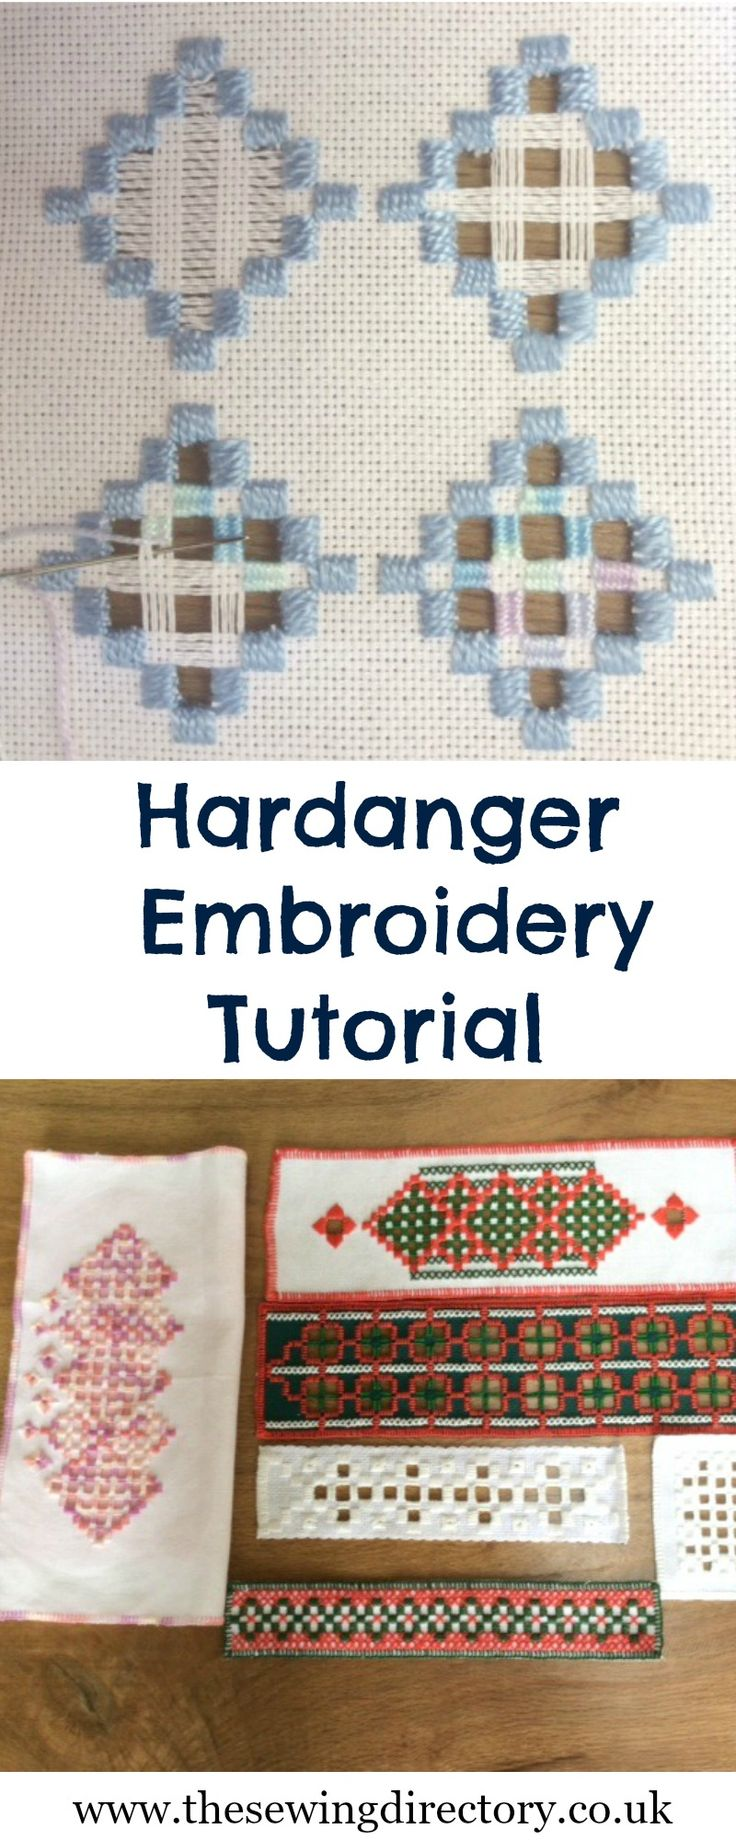 Tutorial on Hardanger embroidery - part of our hand embroidery series